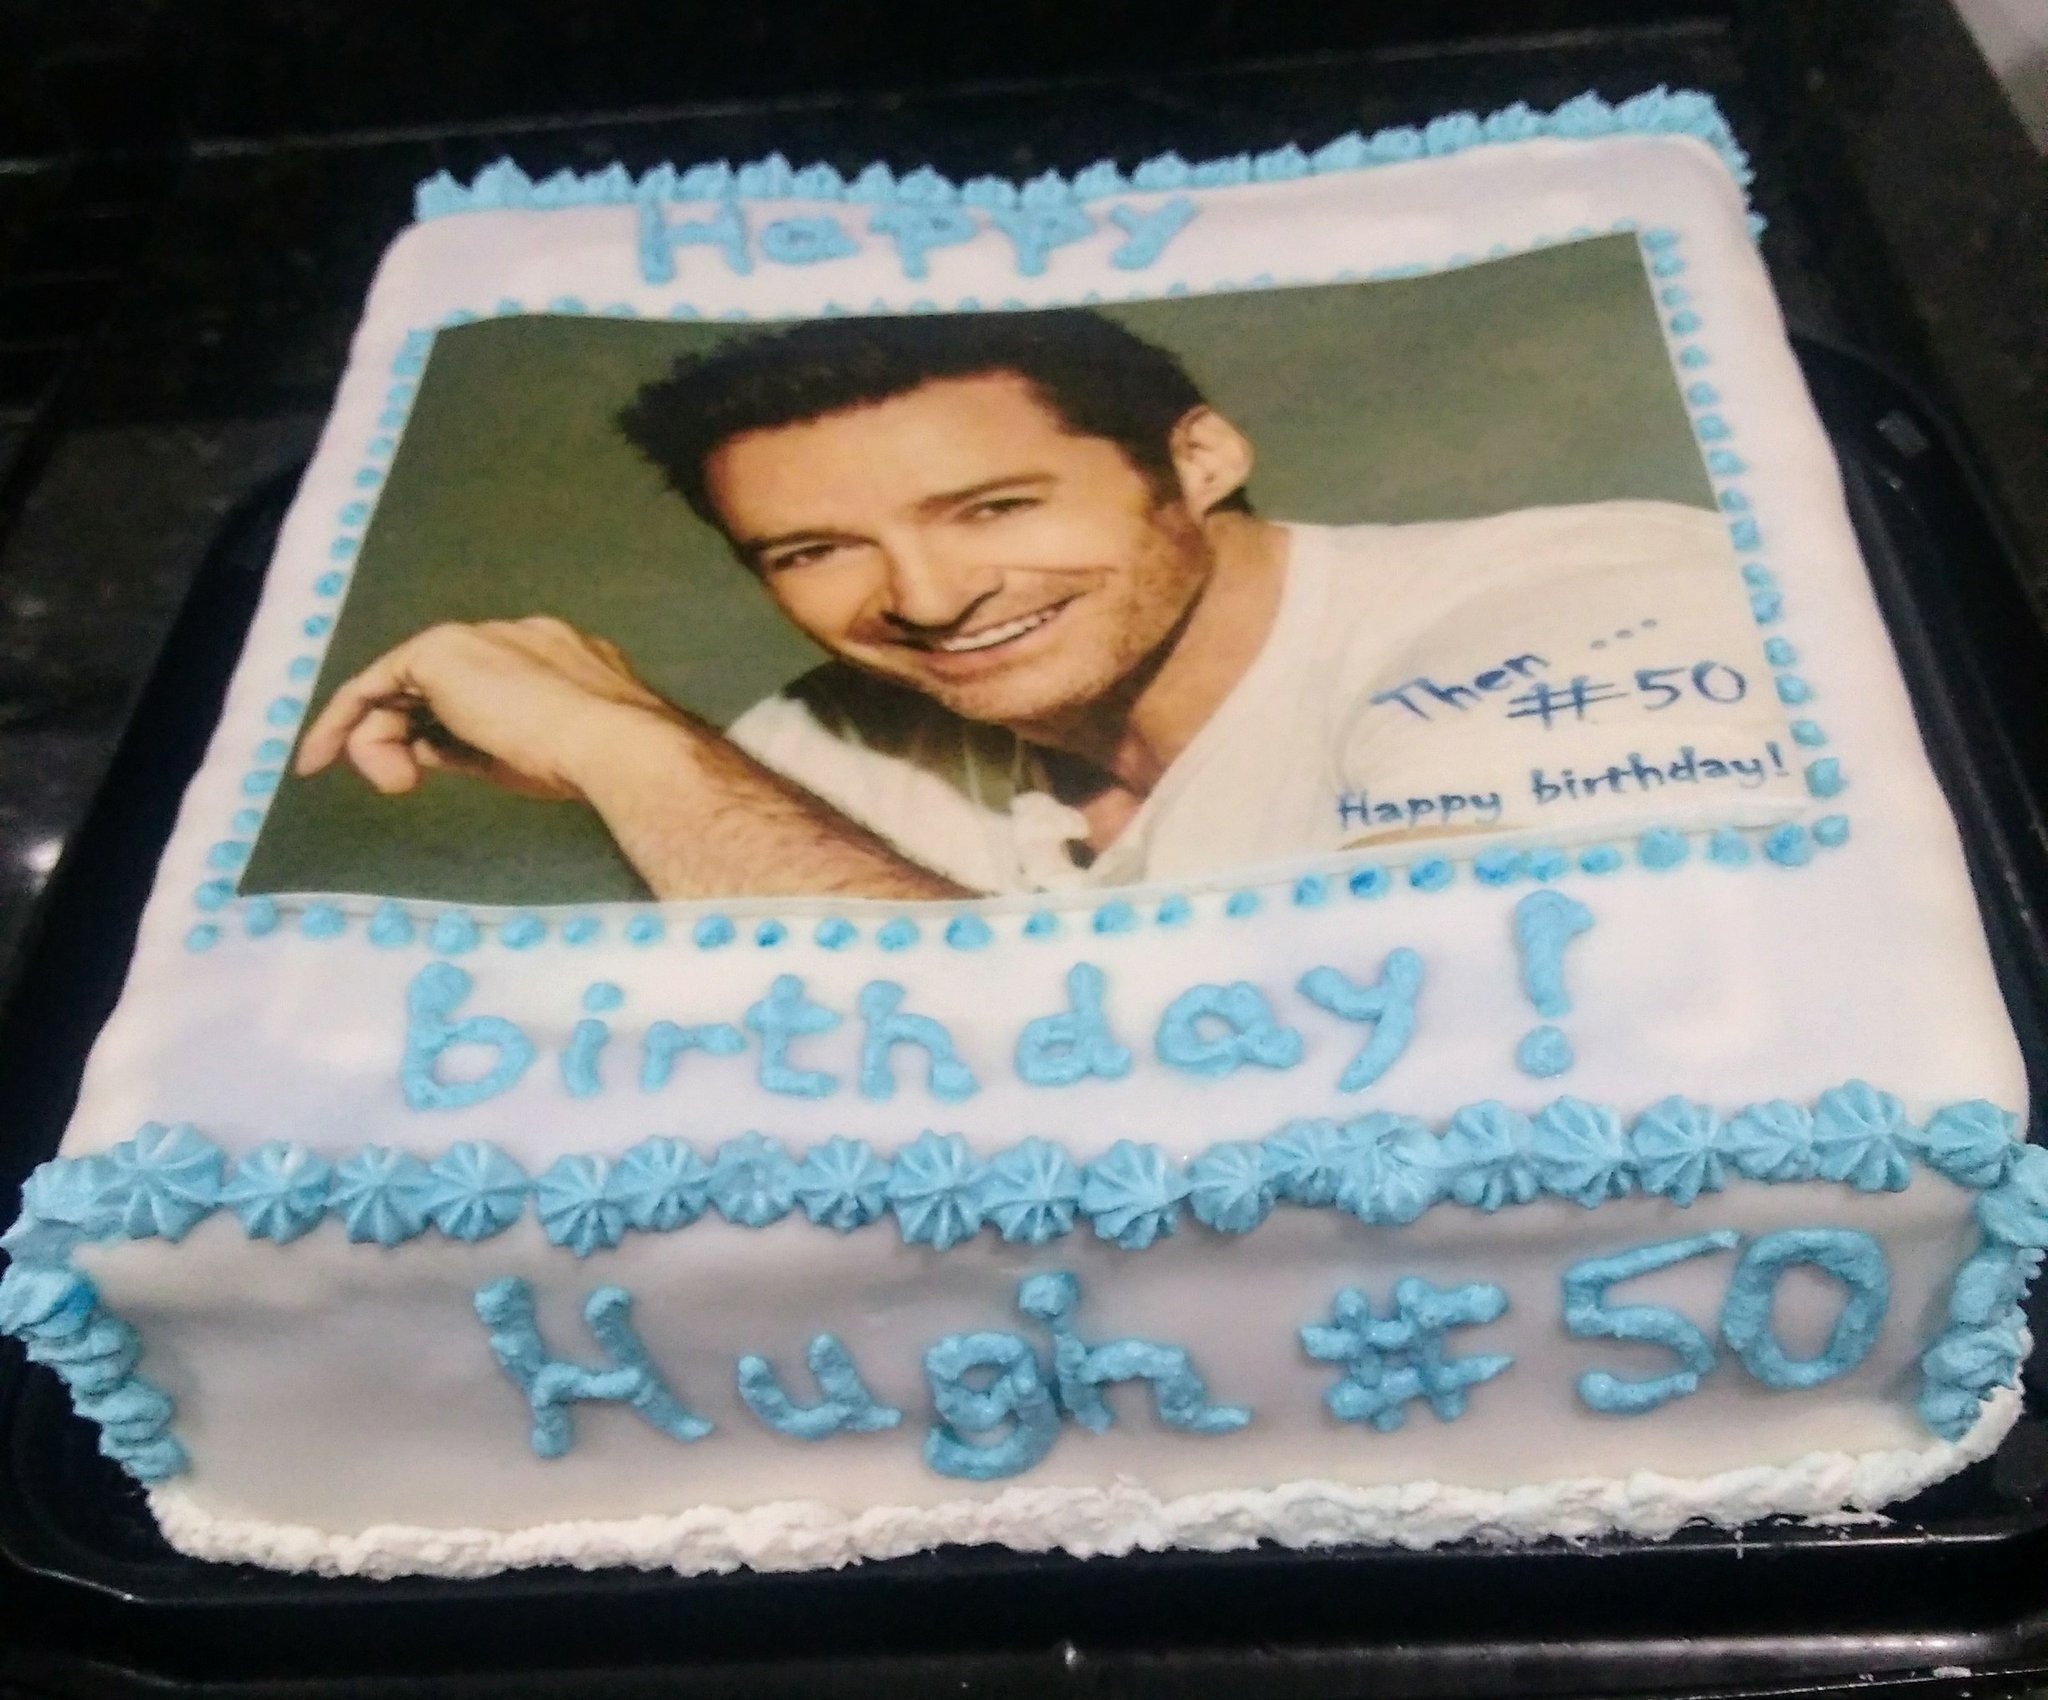 Happy Birthday Hugh Jackman!